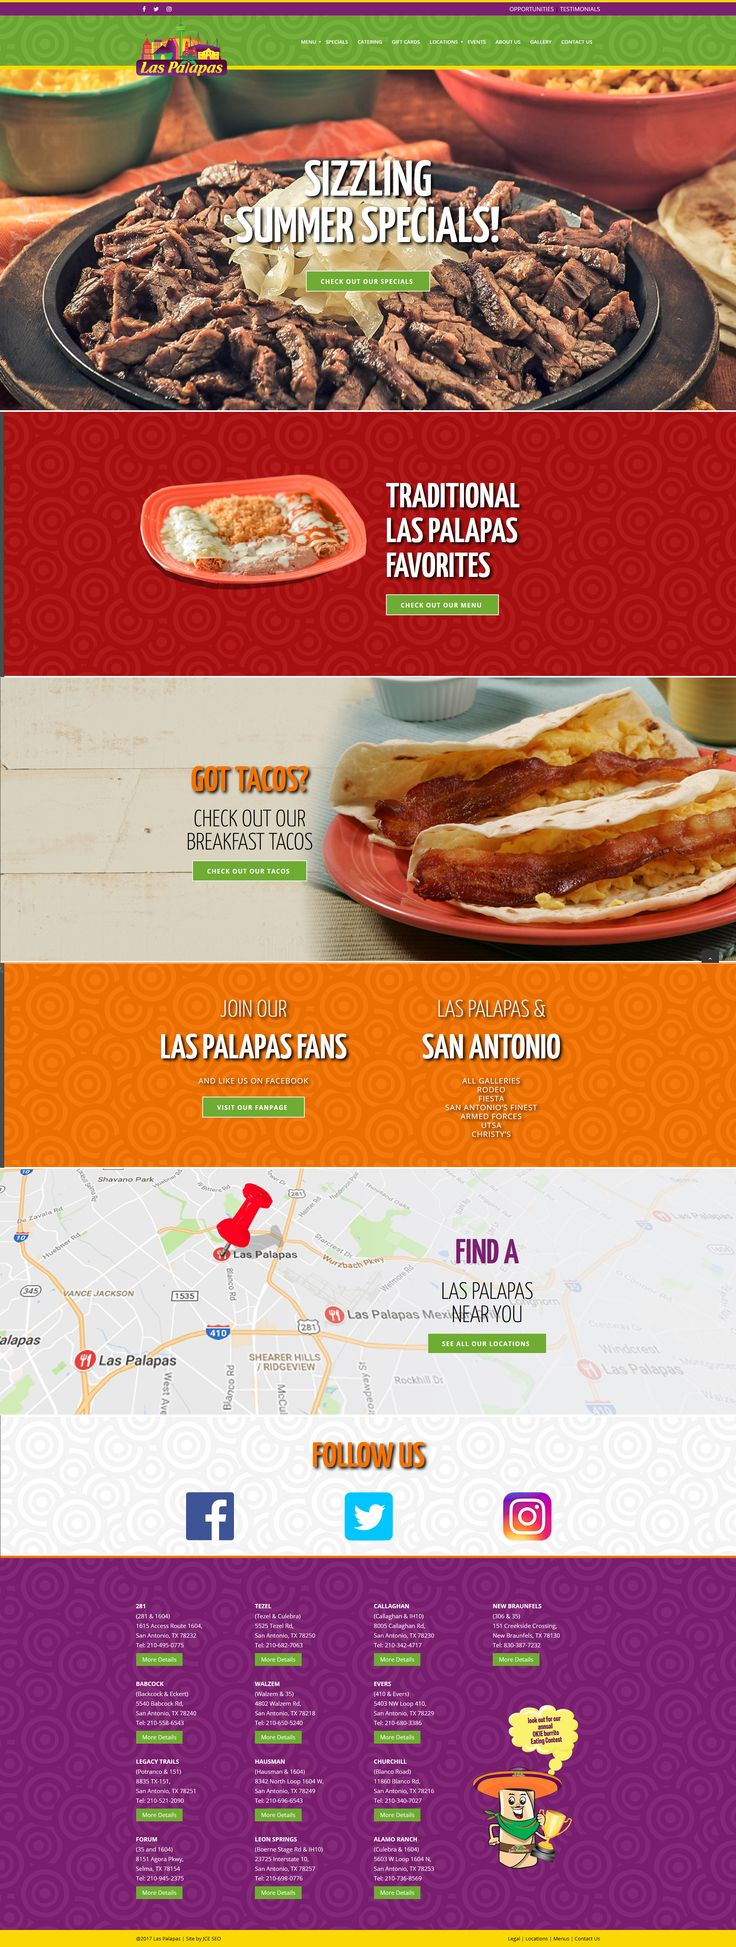 Putting the finishing touches on the new website for the good folks at Las Palapas #websitedesign #jceseo #laspalapas